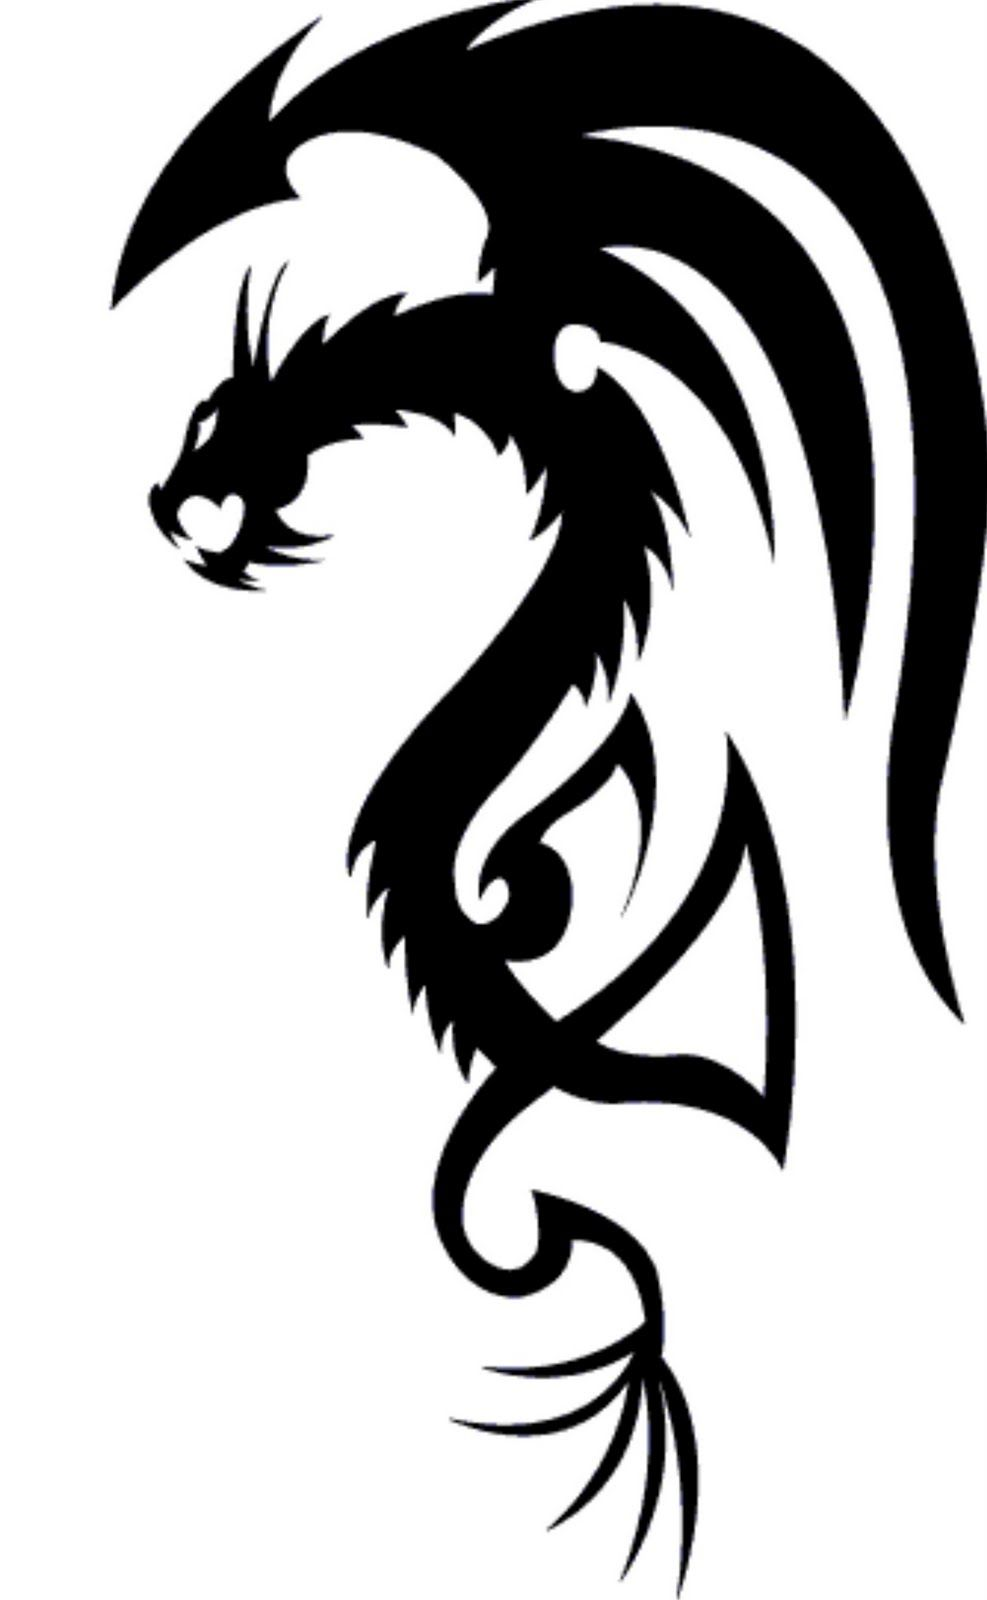 Tattoo S For Simple Dragon Tattoos Designs Dragon Tattoo Designs Dragon Tattoo Images Tribal Dragon Tattoo